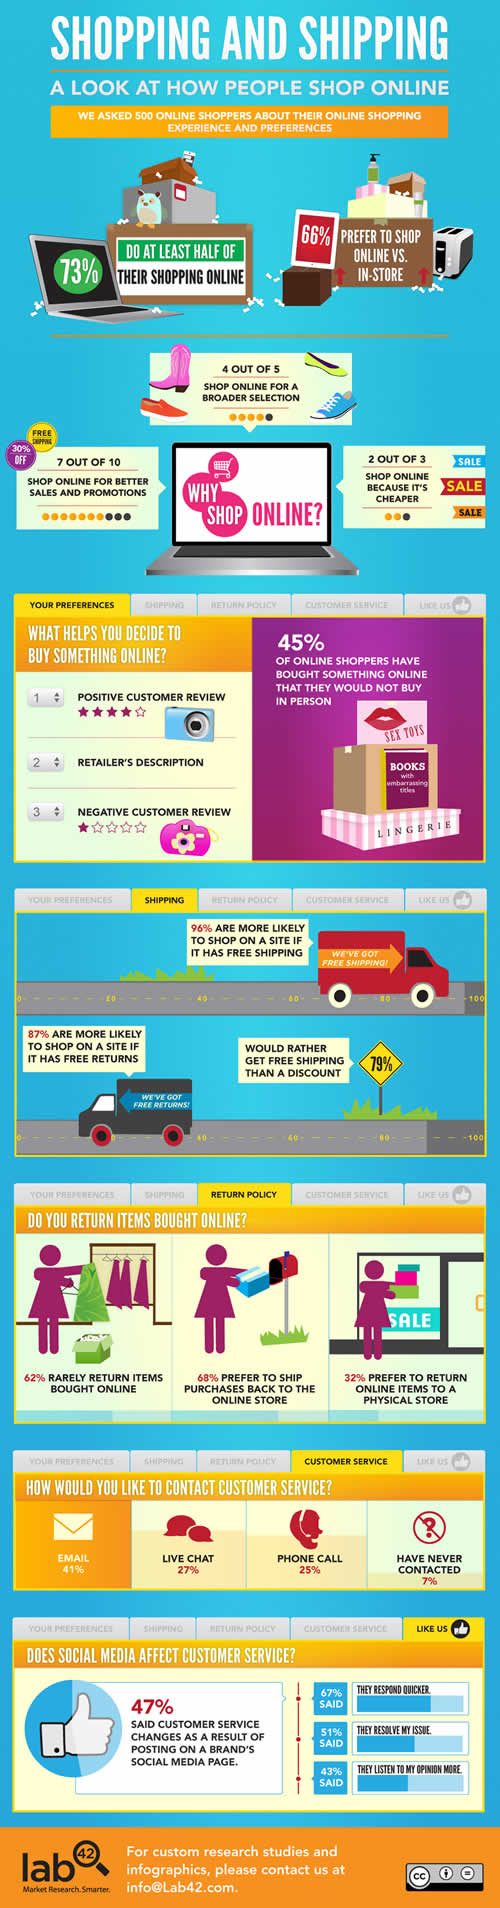 Online-Shopping-Infographic_1-2012-08-27-22-09.jpg